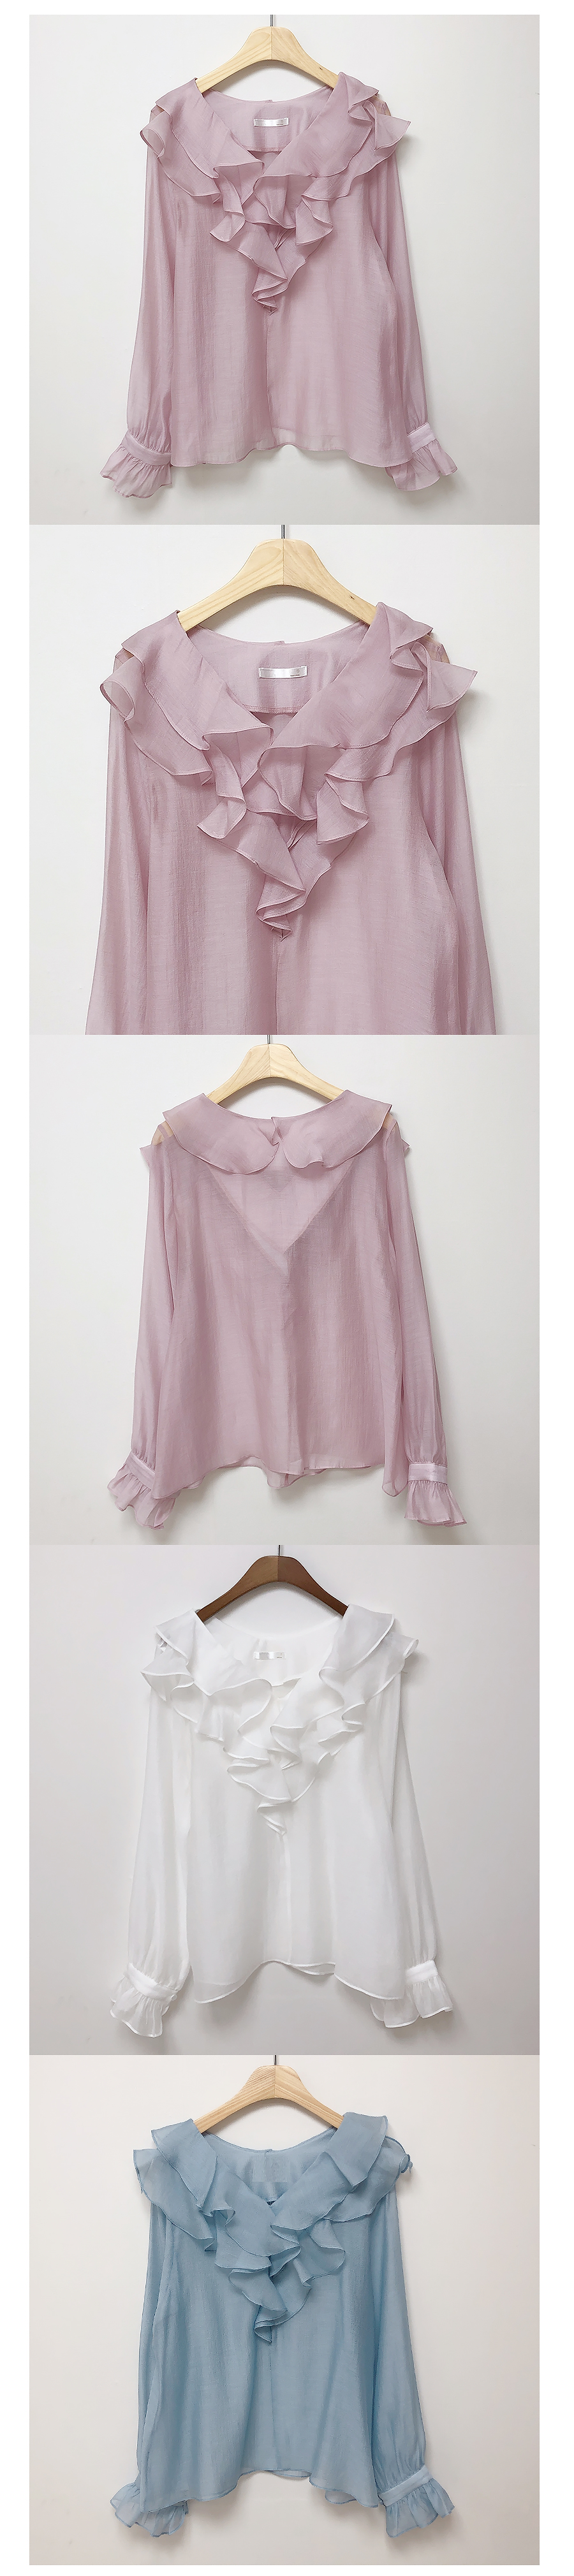 Innocent frill see-through blouse